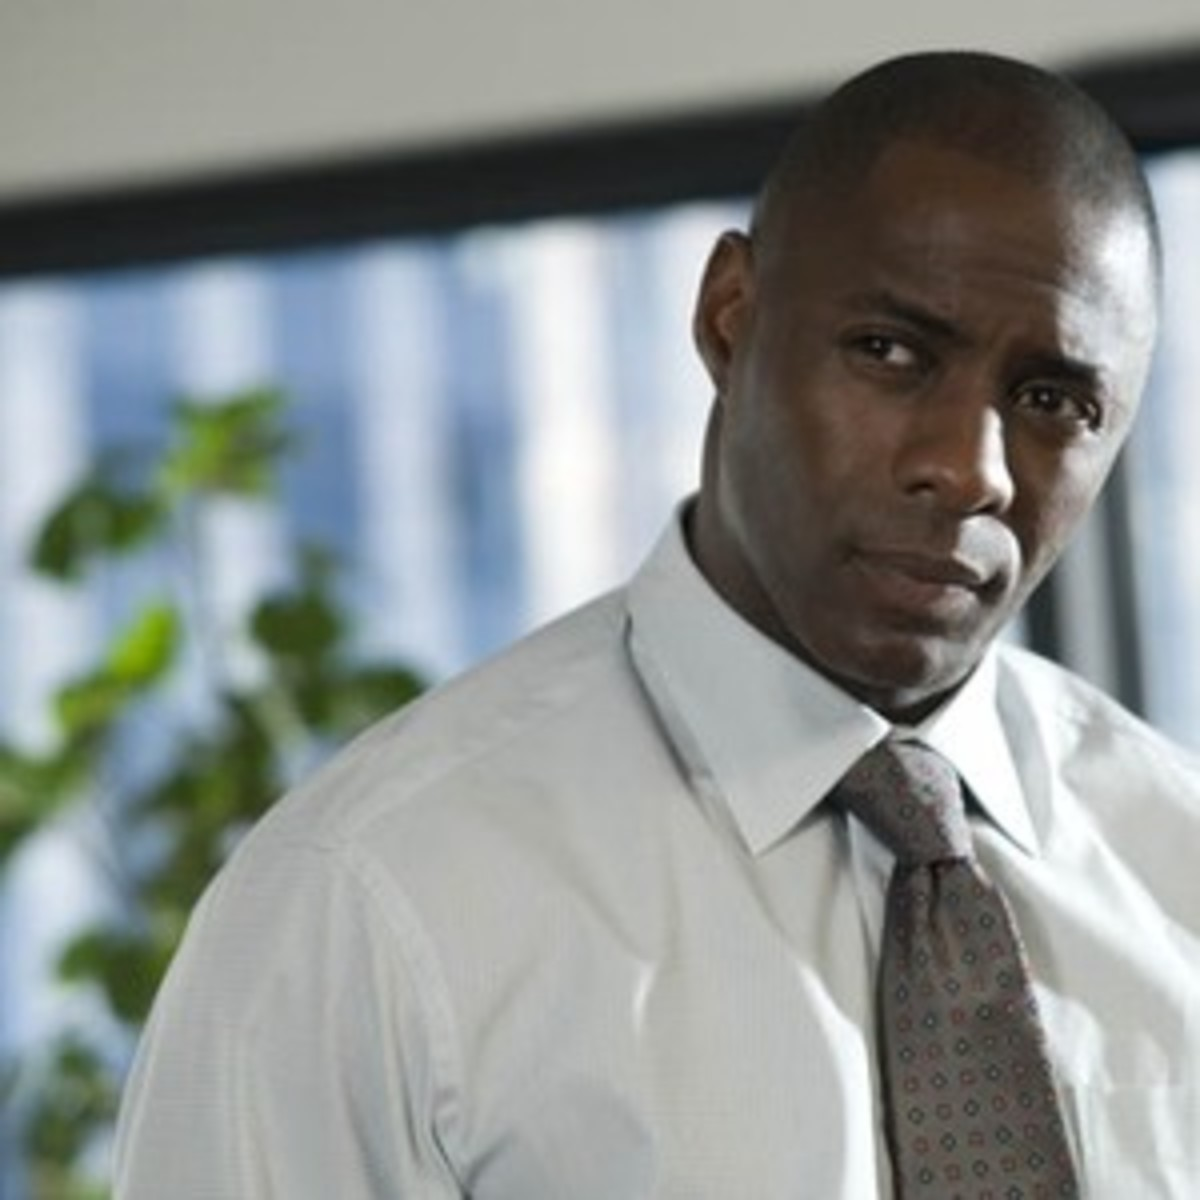 Actor Idris Elba as the character Derrick in Obsessed the movie.